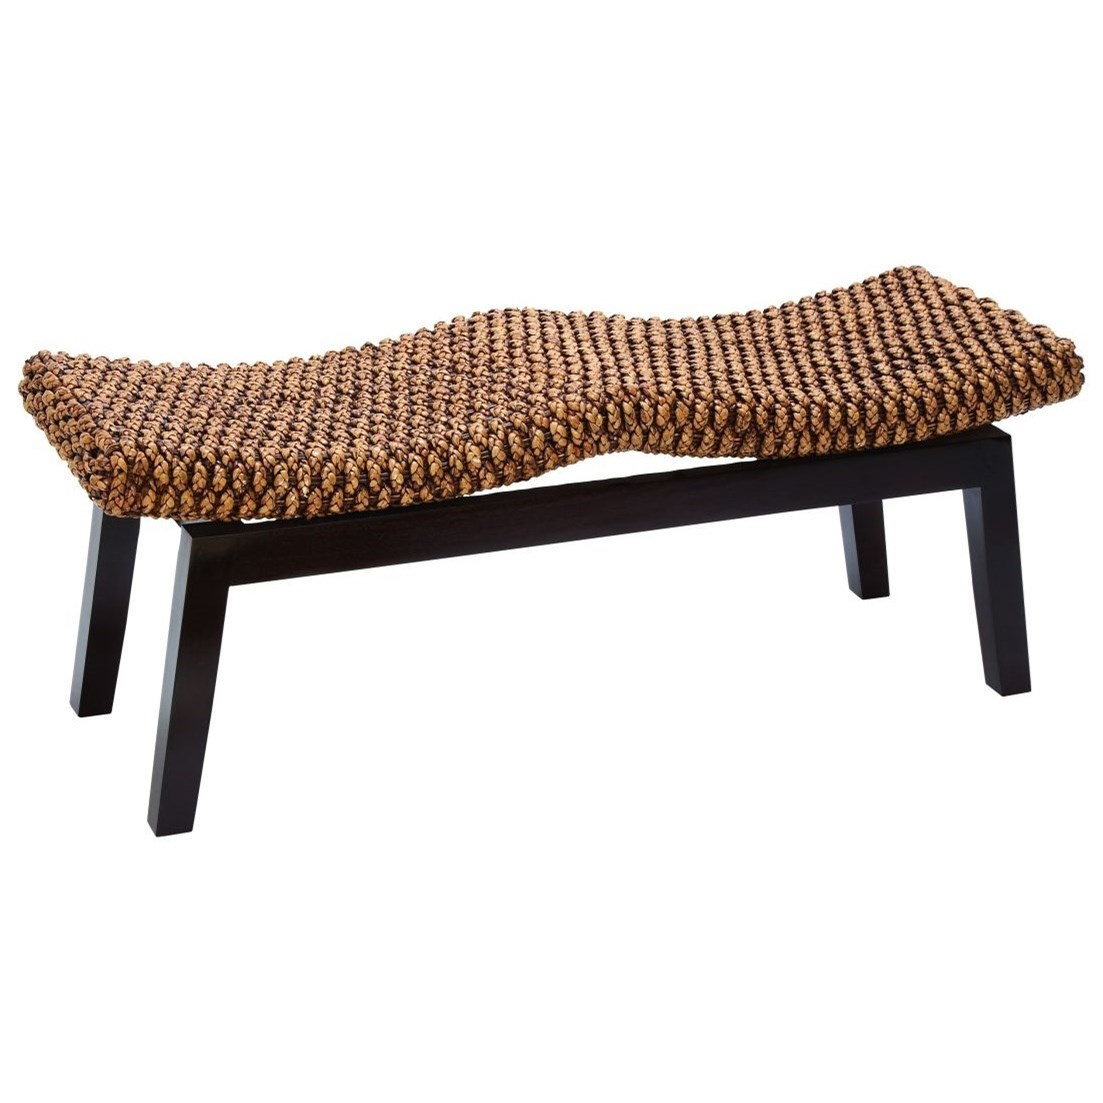 Accent Furniture Wood/Hyacinth Bench by UMA Enterprises, Inc. at Wilcox Furniture